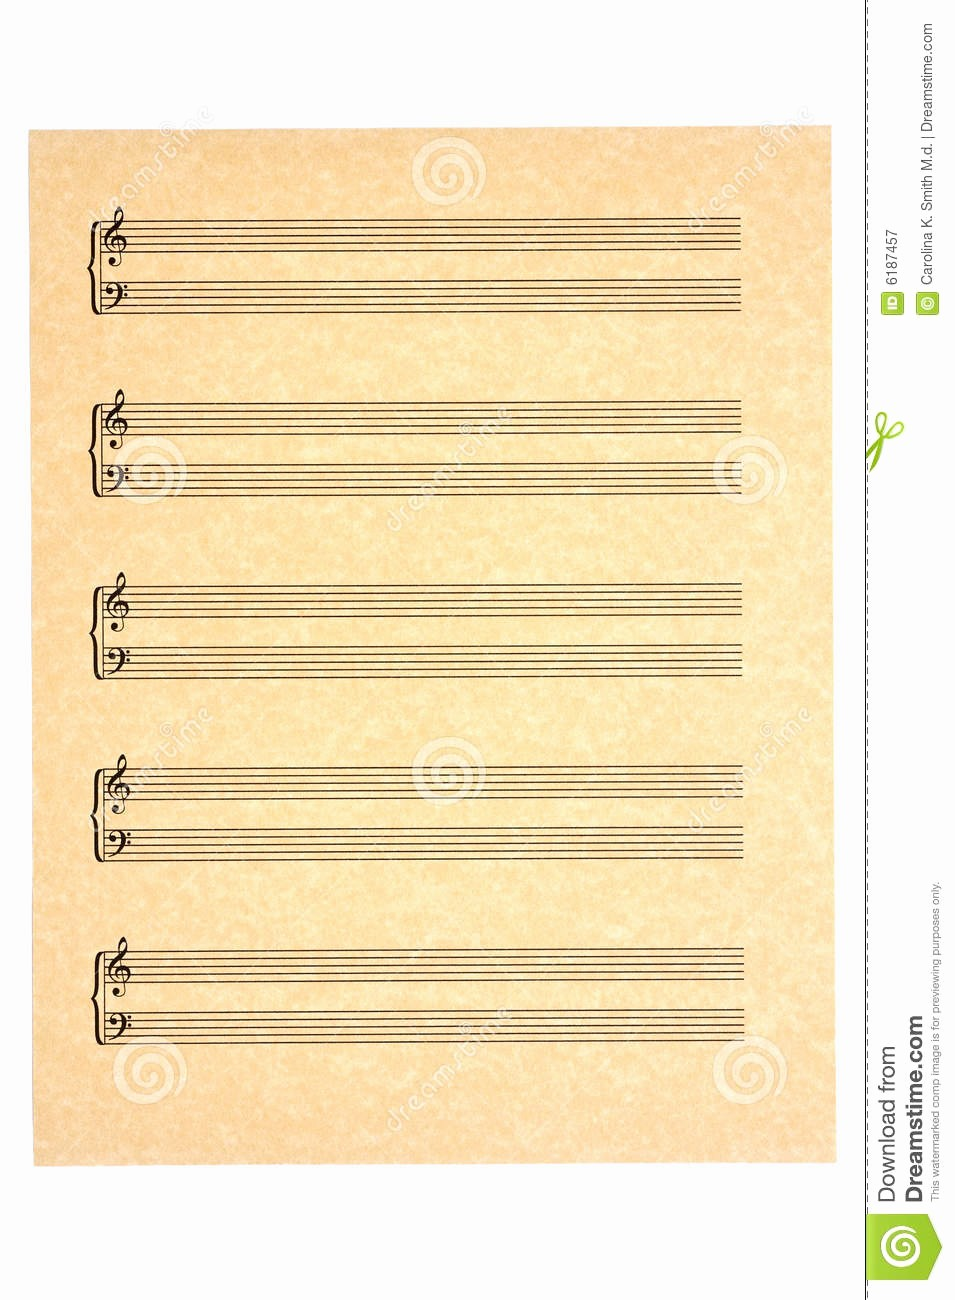 Blank Sheet Music Bass Clef Inspirational Blank Music Sheet Treble and Bass Clefs Stock Image